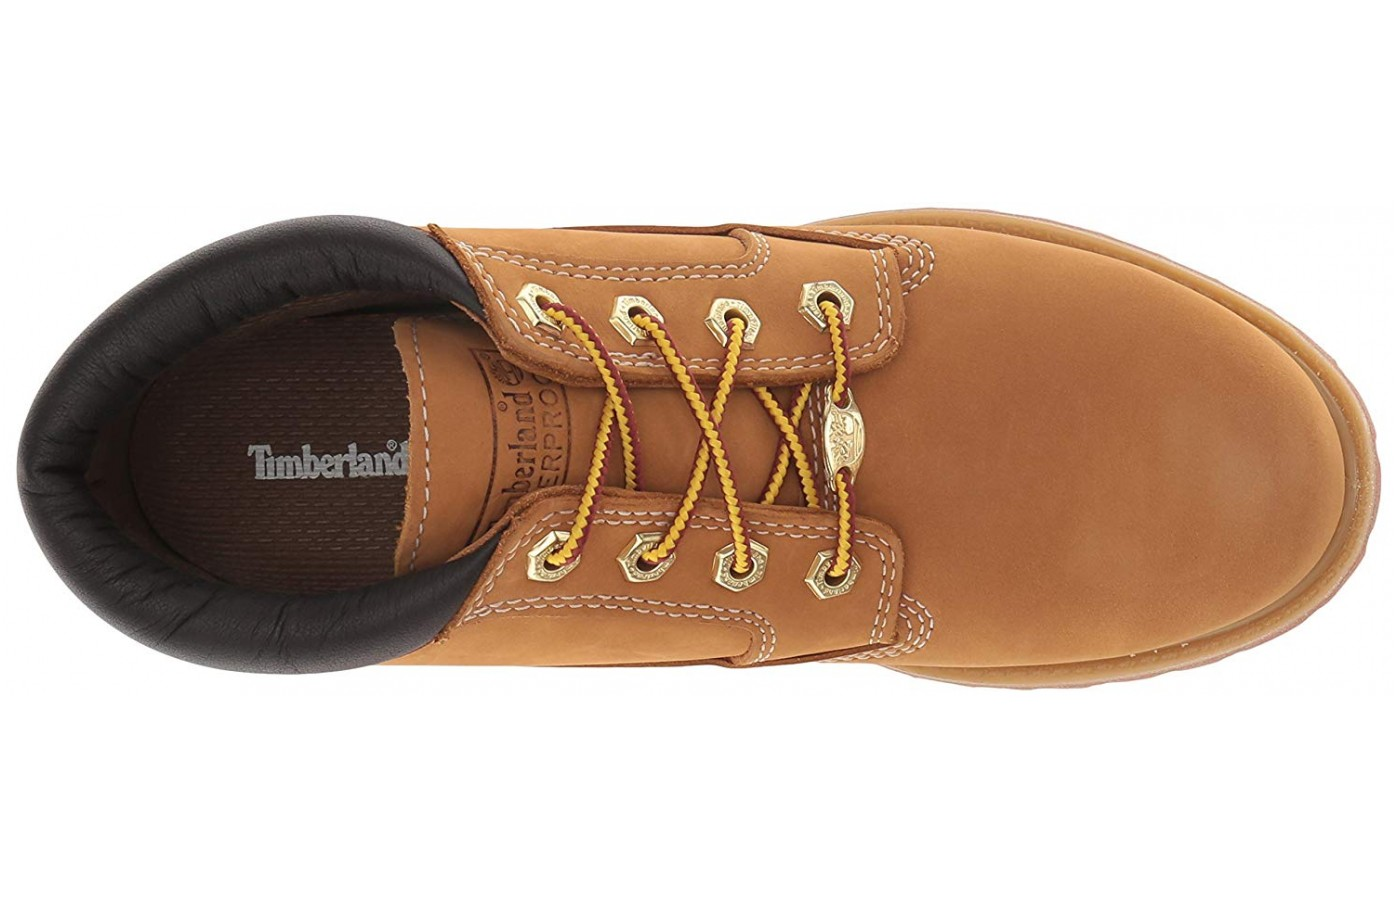 The upper is made from full-grain leather, premium quality proven to be waterproof yet breathable.